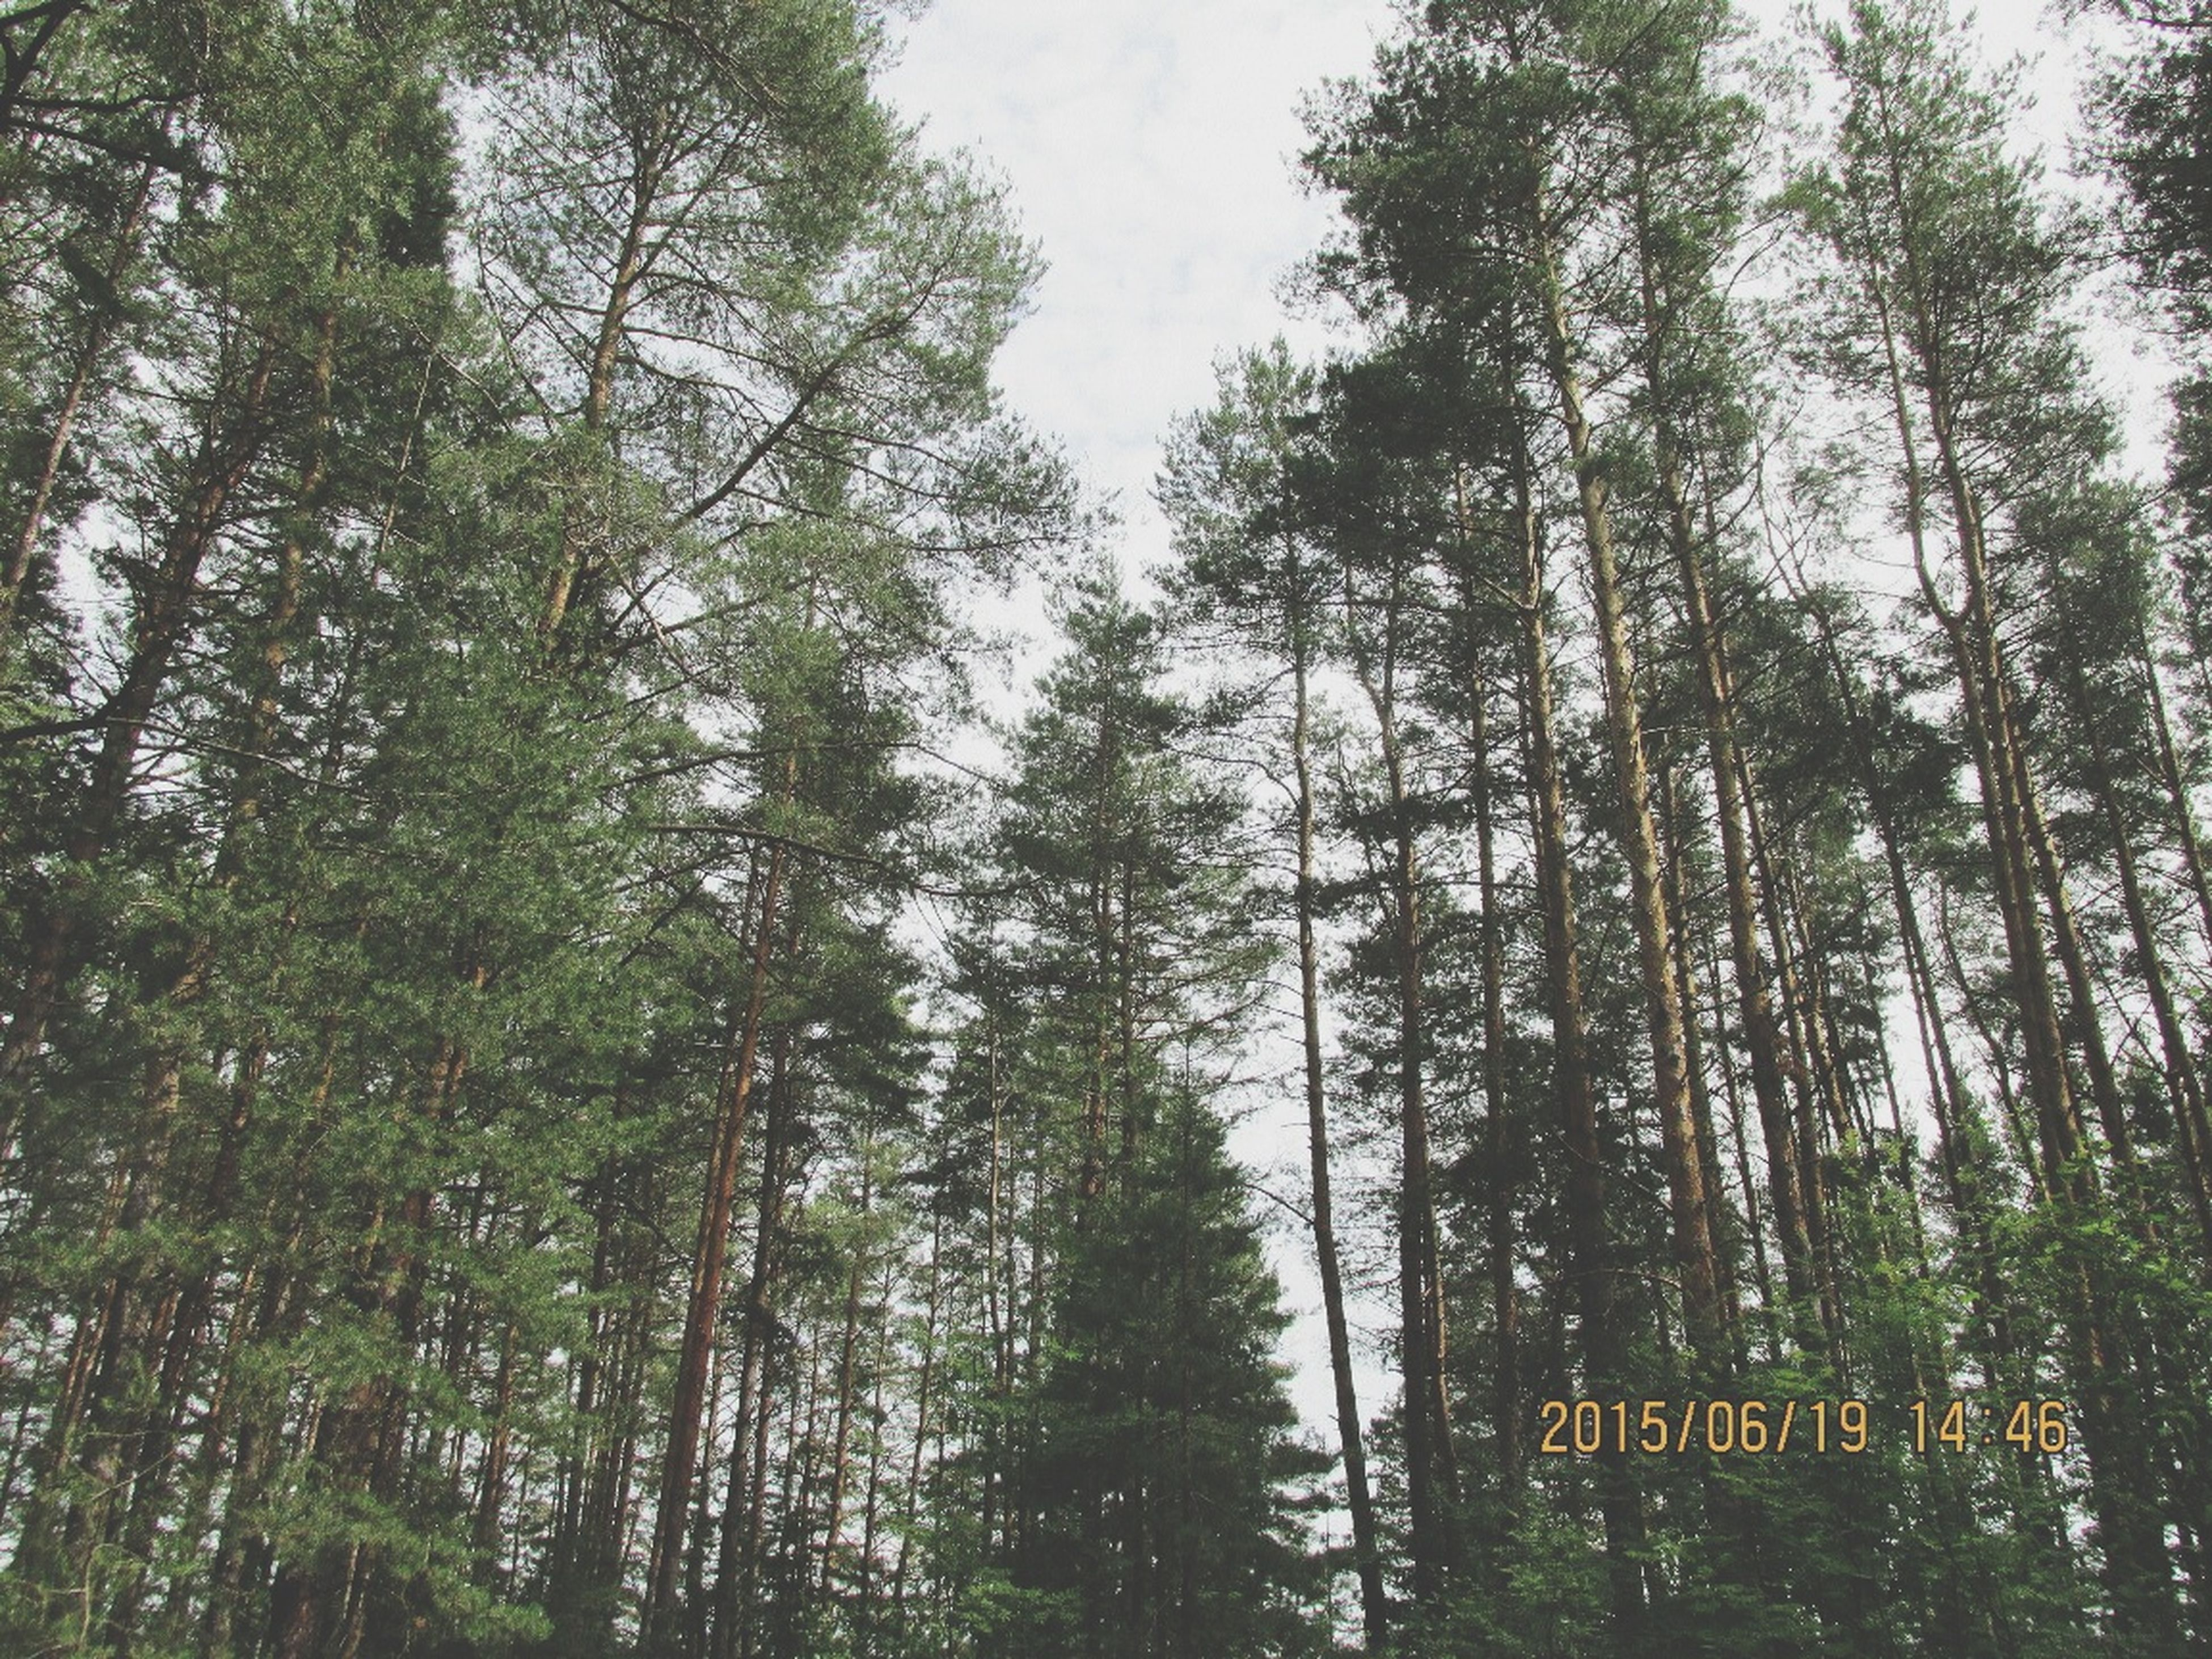 tree, growth, low angle view, forest, tree trunk, tranquility, nature, branch, green color, sky, tranquil scene, woodland, day, beauty in nature, outdoors, tall - high, no people, scenics, lush foliage, non-urban scene